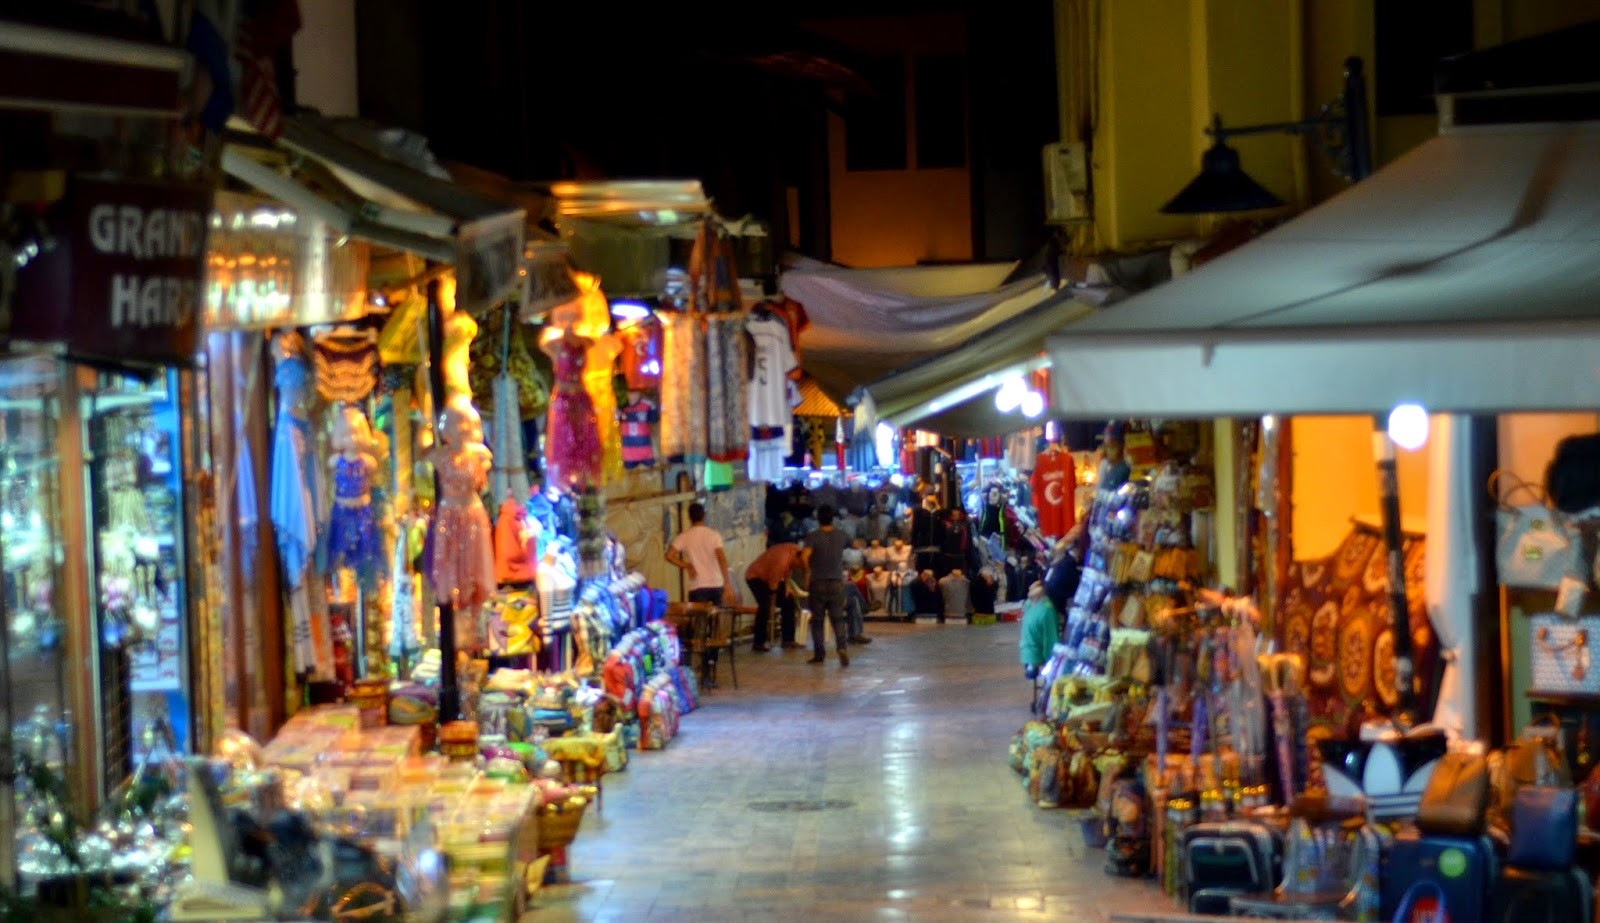 antalya-old-town-street-night